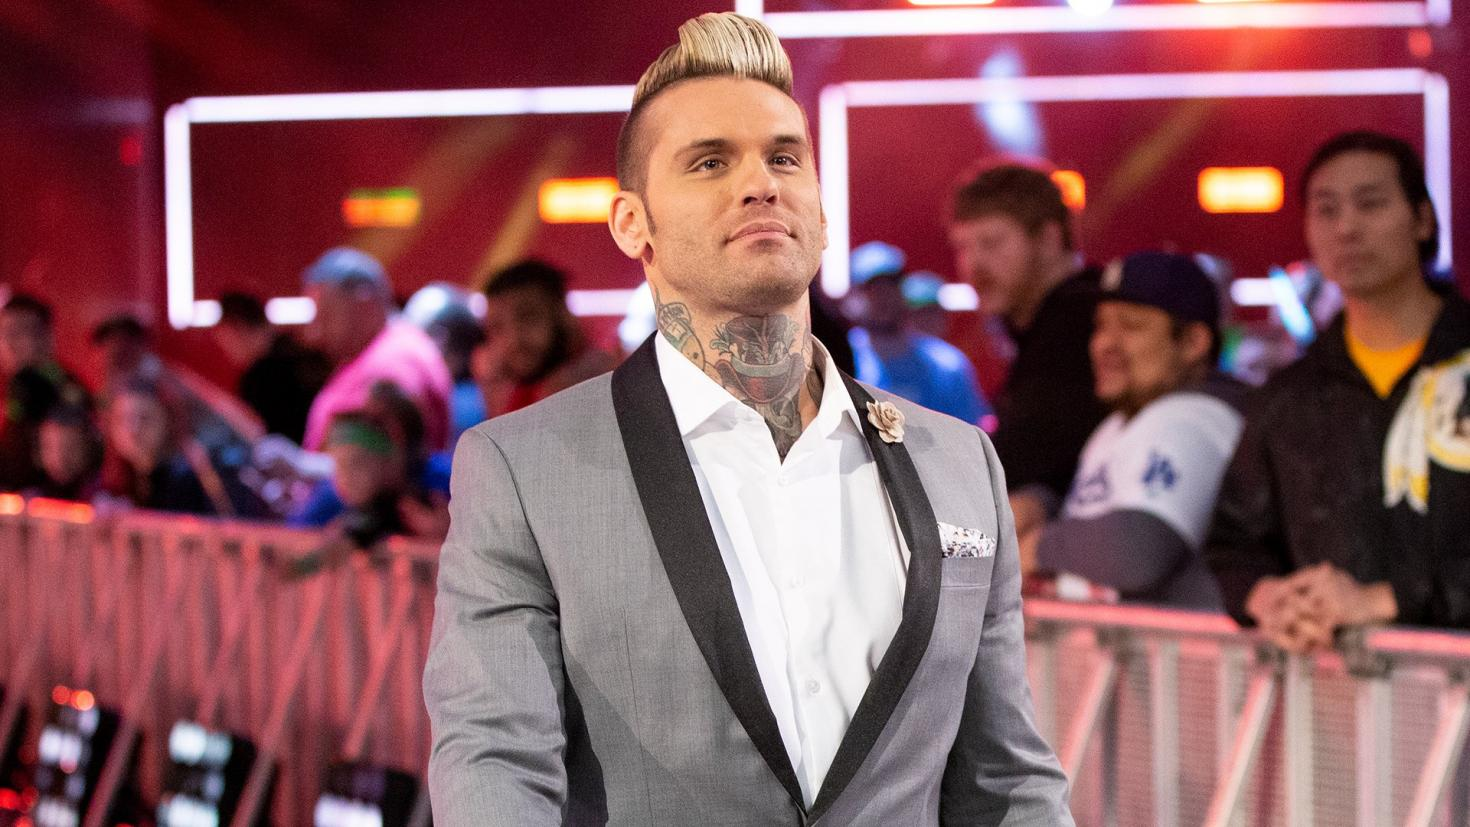 WWE commentator Corey Graves sends sassy tweets to CM Punk following UFC loss